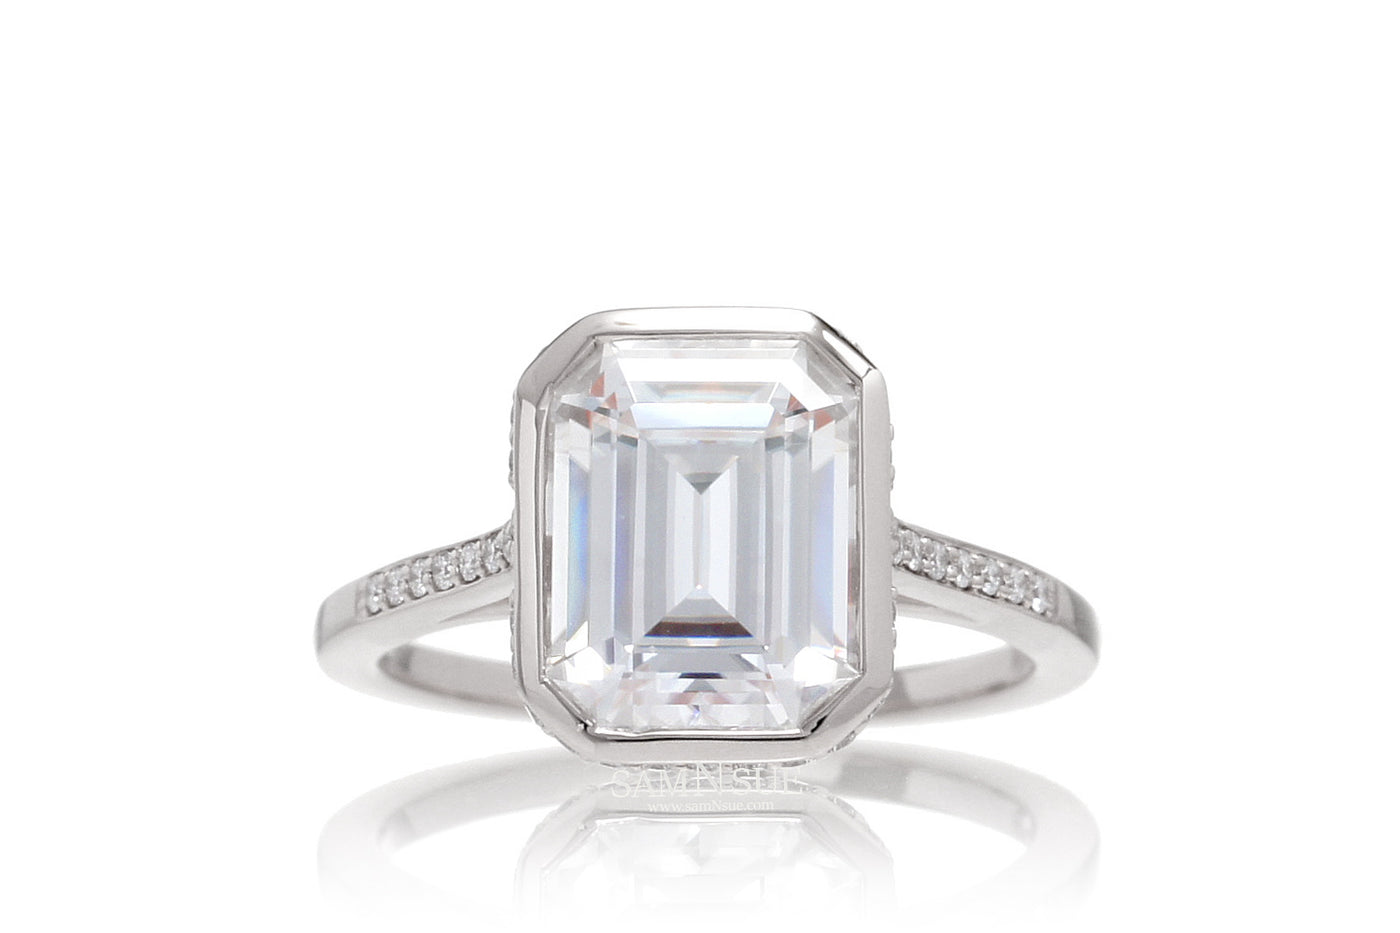 14k Size 7 11x9 Emerald Cut Moissanite Bezel Set Engagement Ring